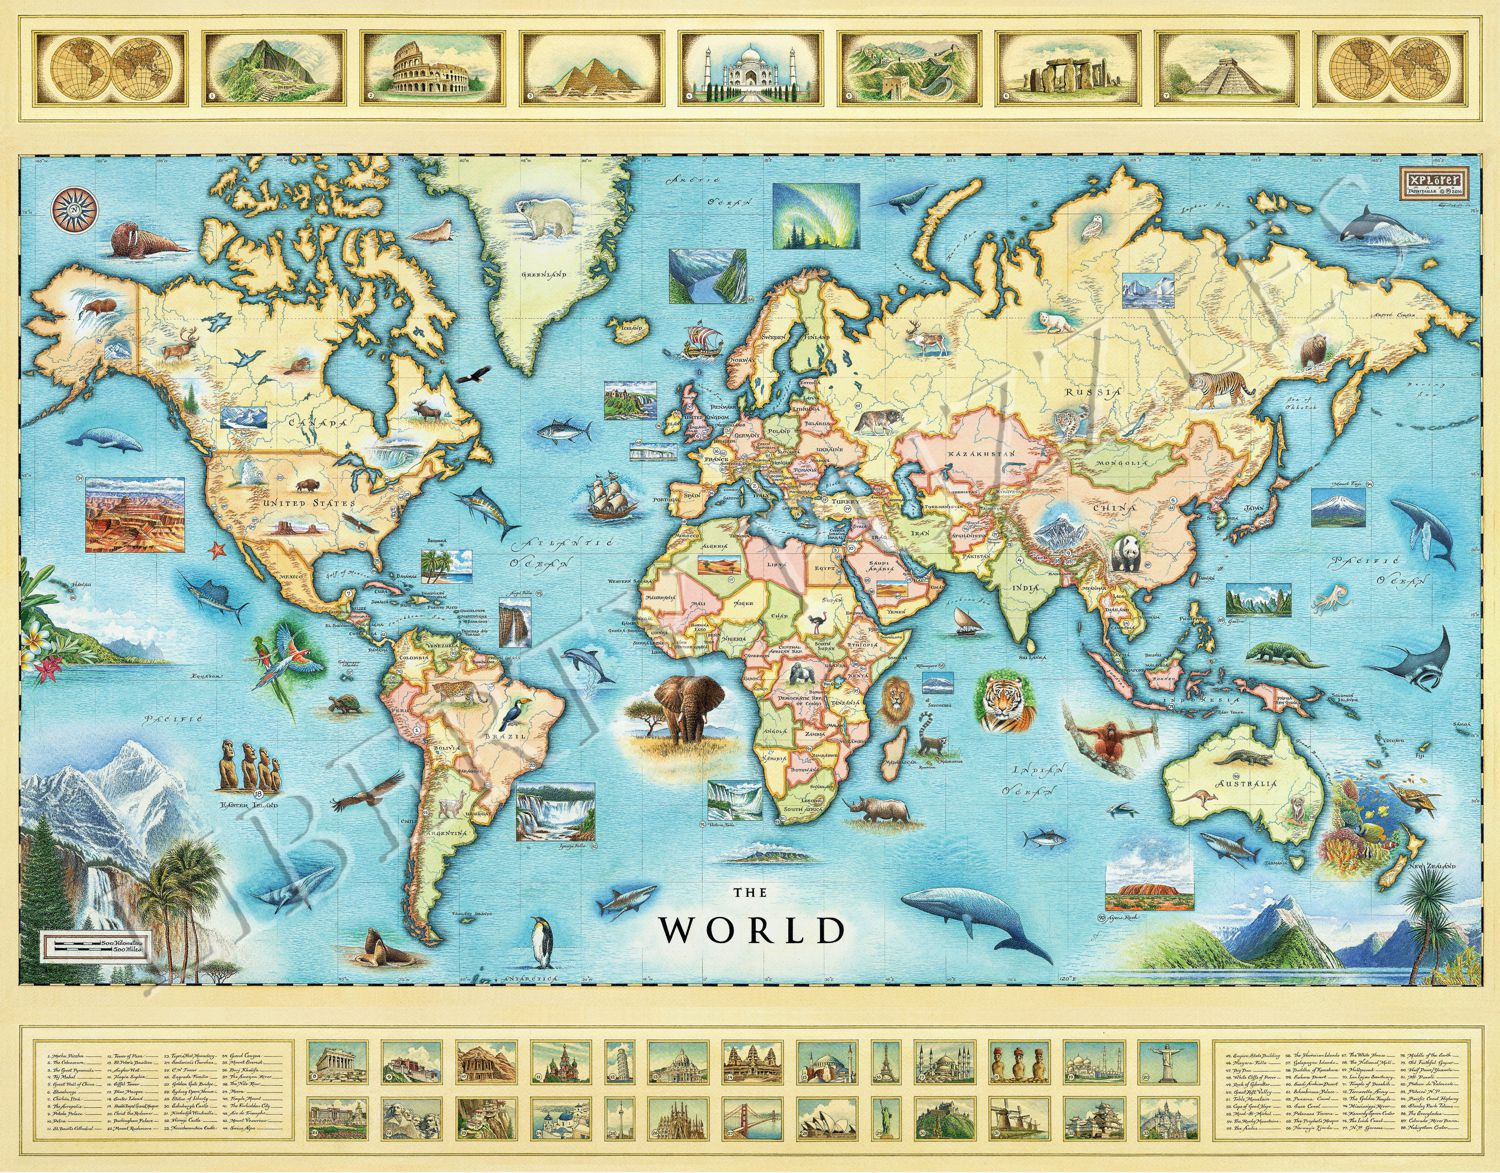 The World Map - Wooden Jigsaw Puzzle - Liberty Puzzles - Made in the USA